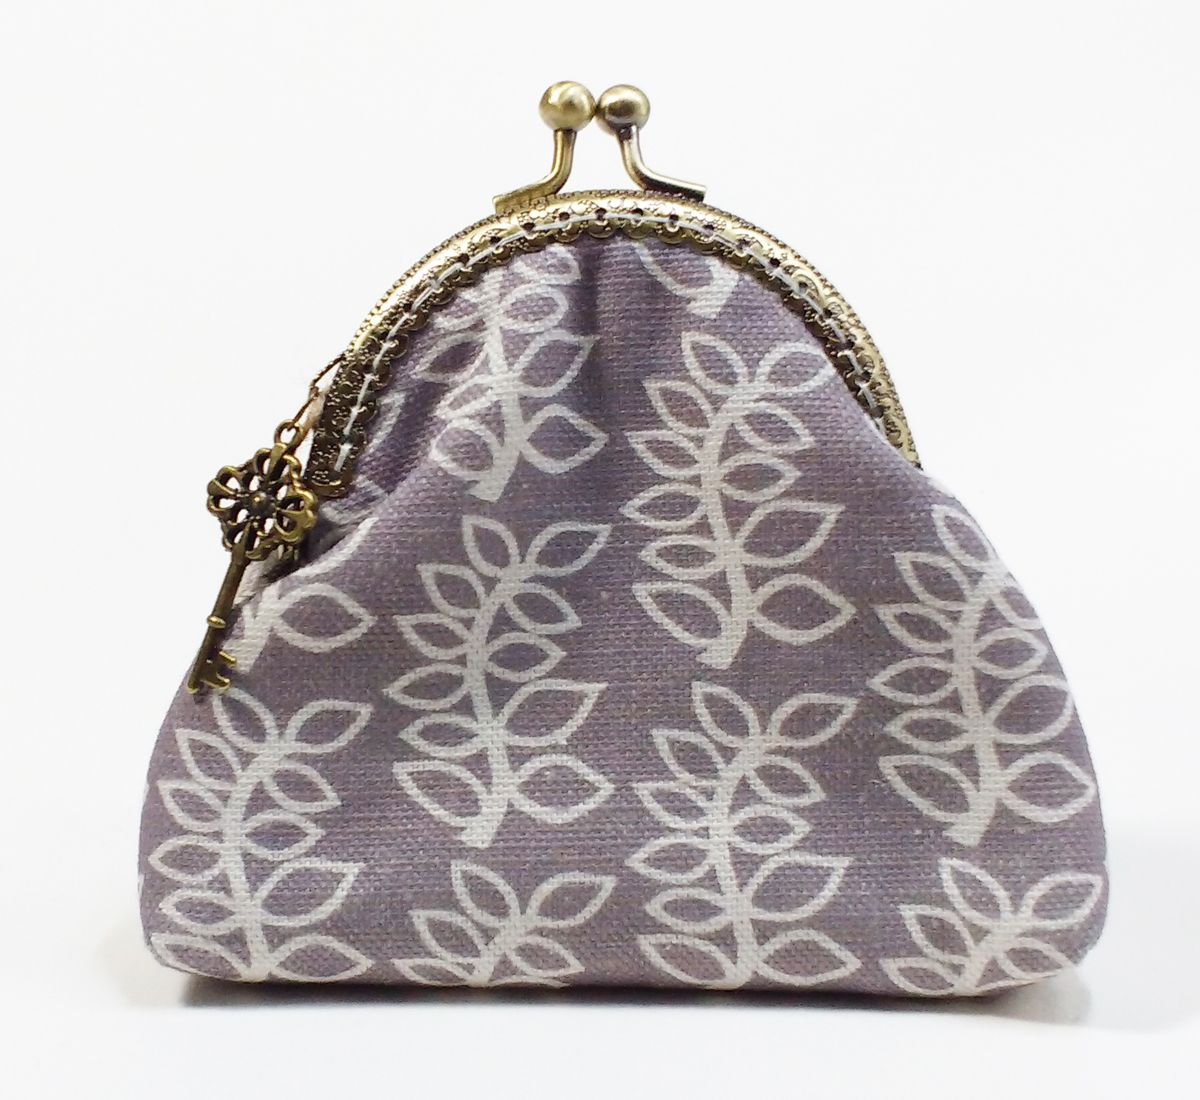 Stoney grey leaves kiss clasp purse